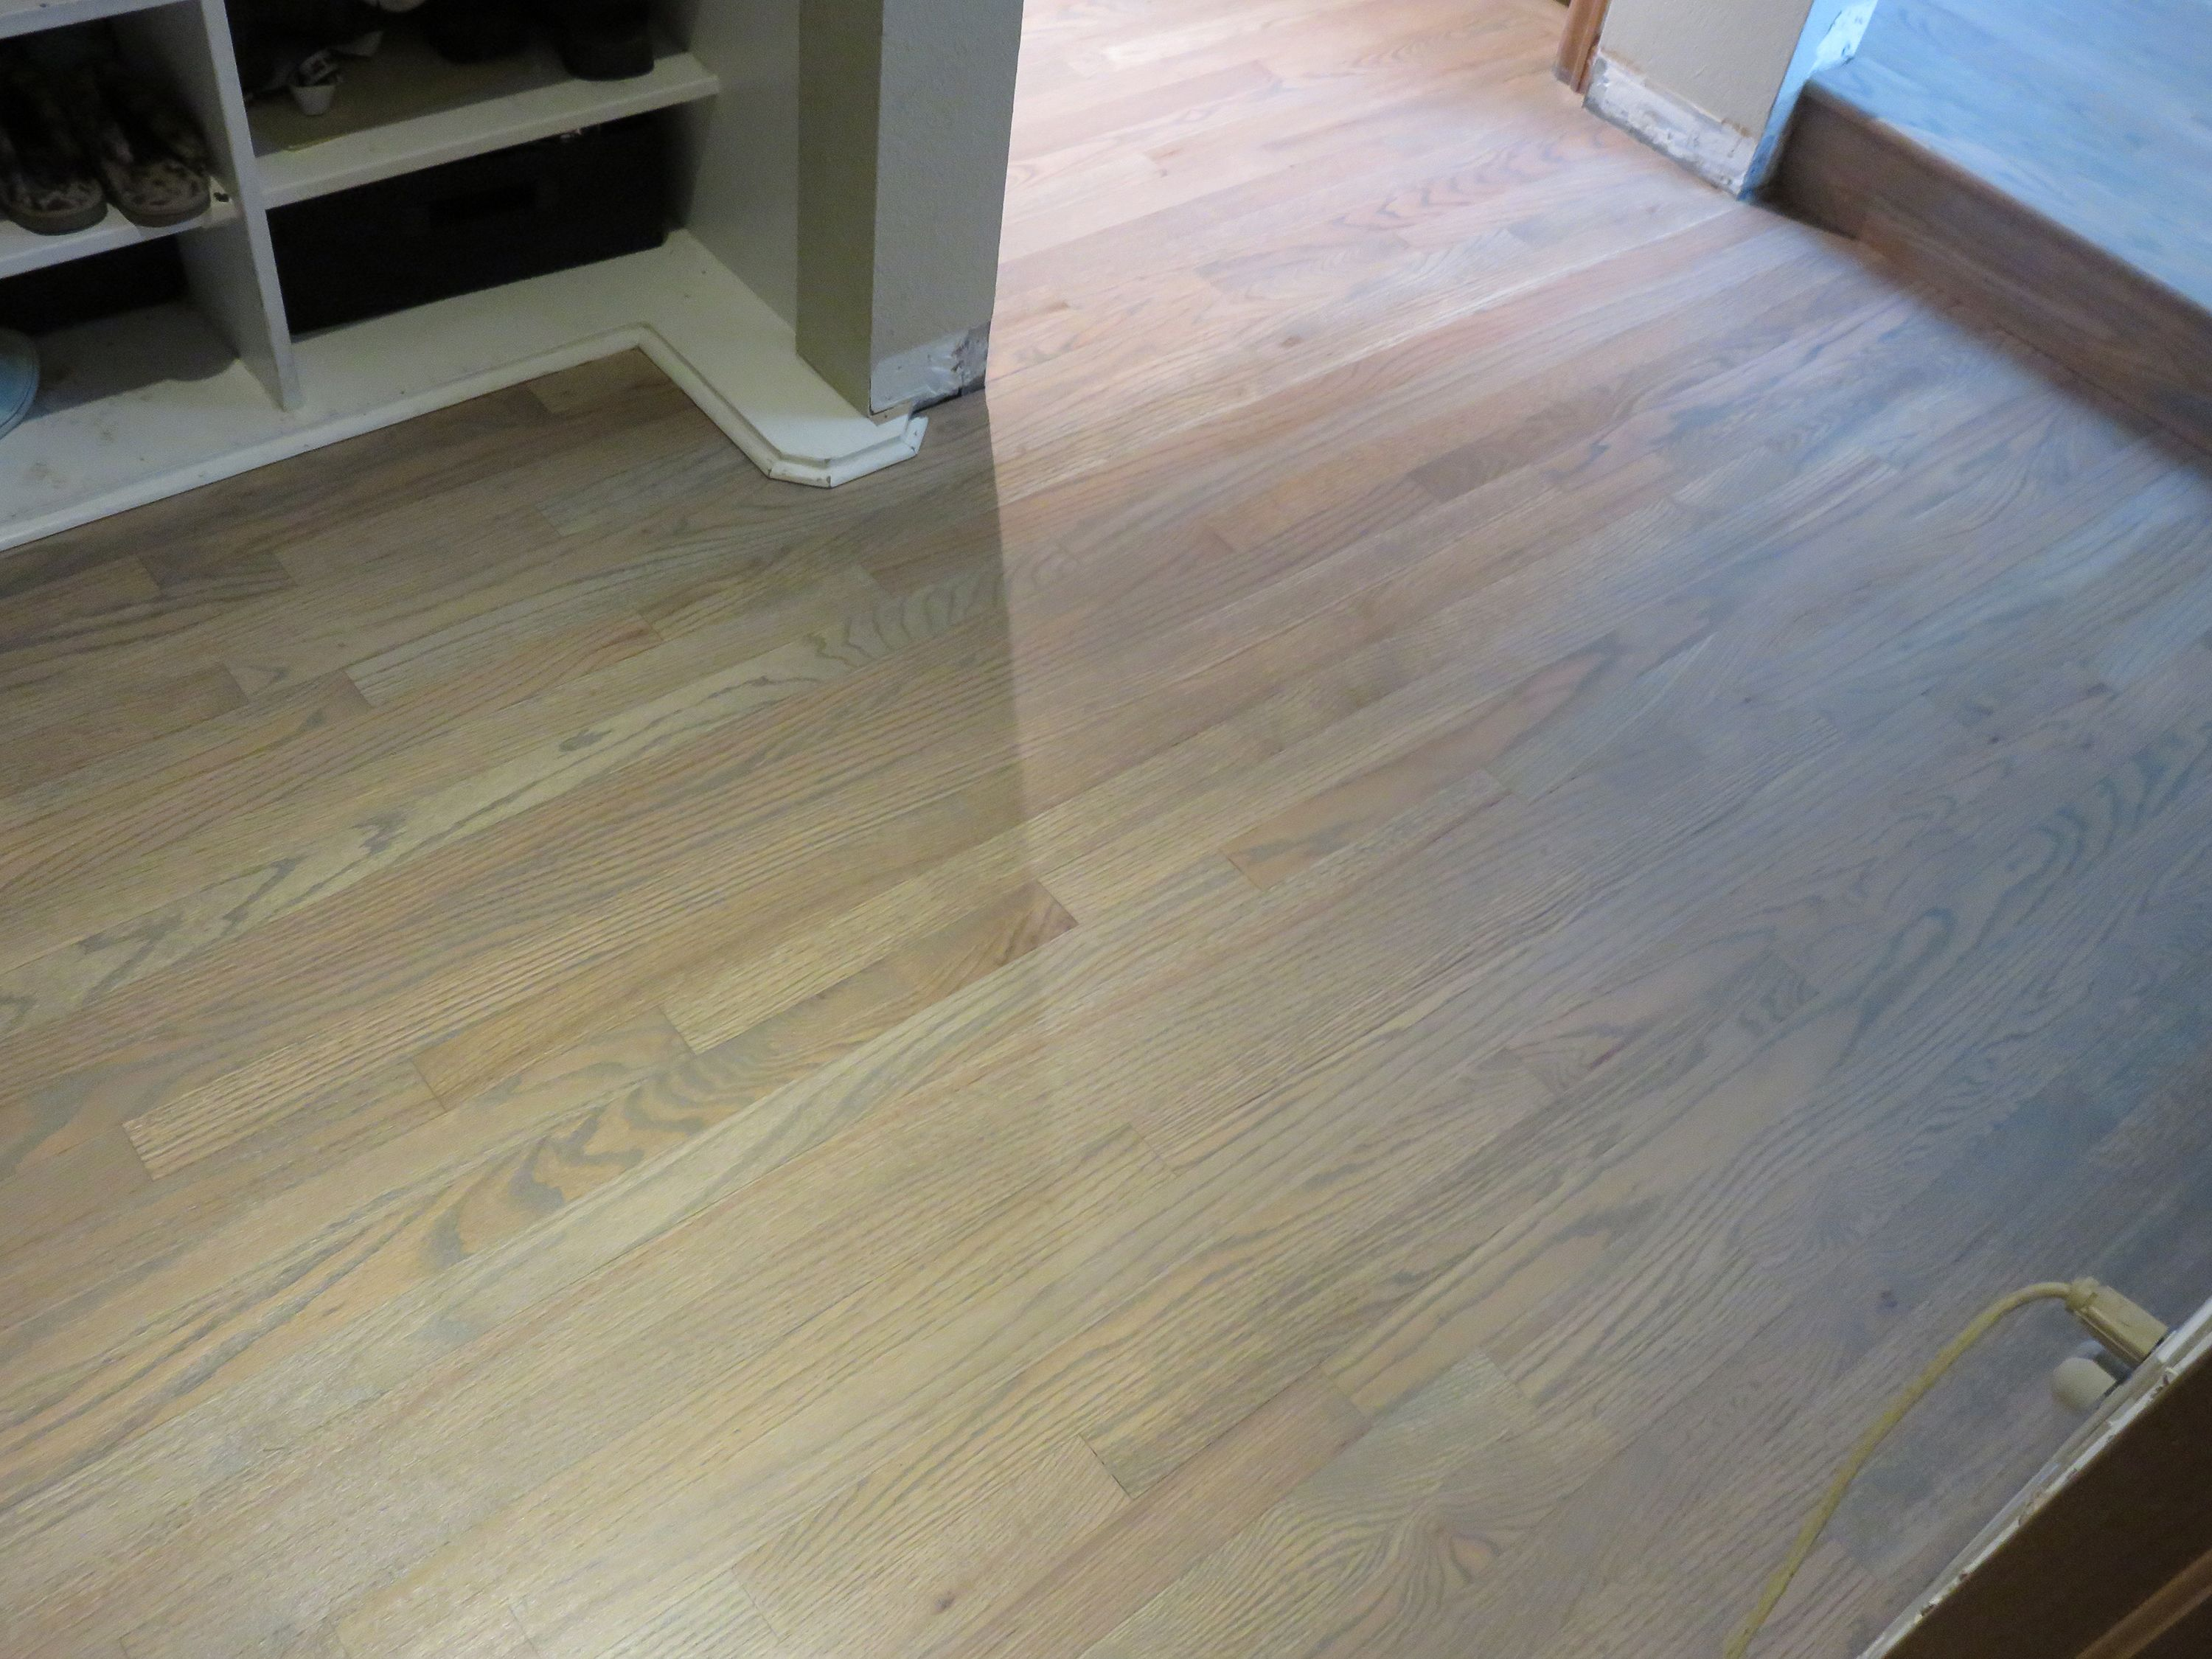 Red oak hardwood floors stained with duraseal classic gray for Classic wood floors